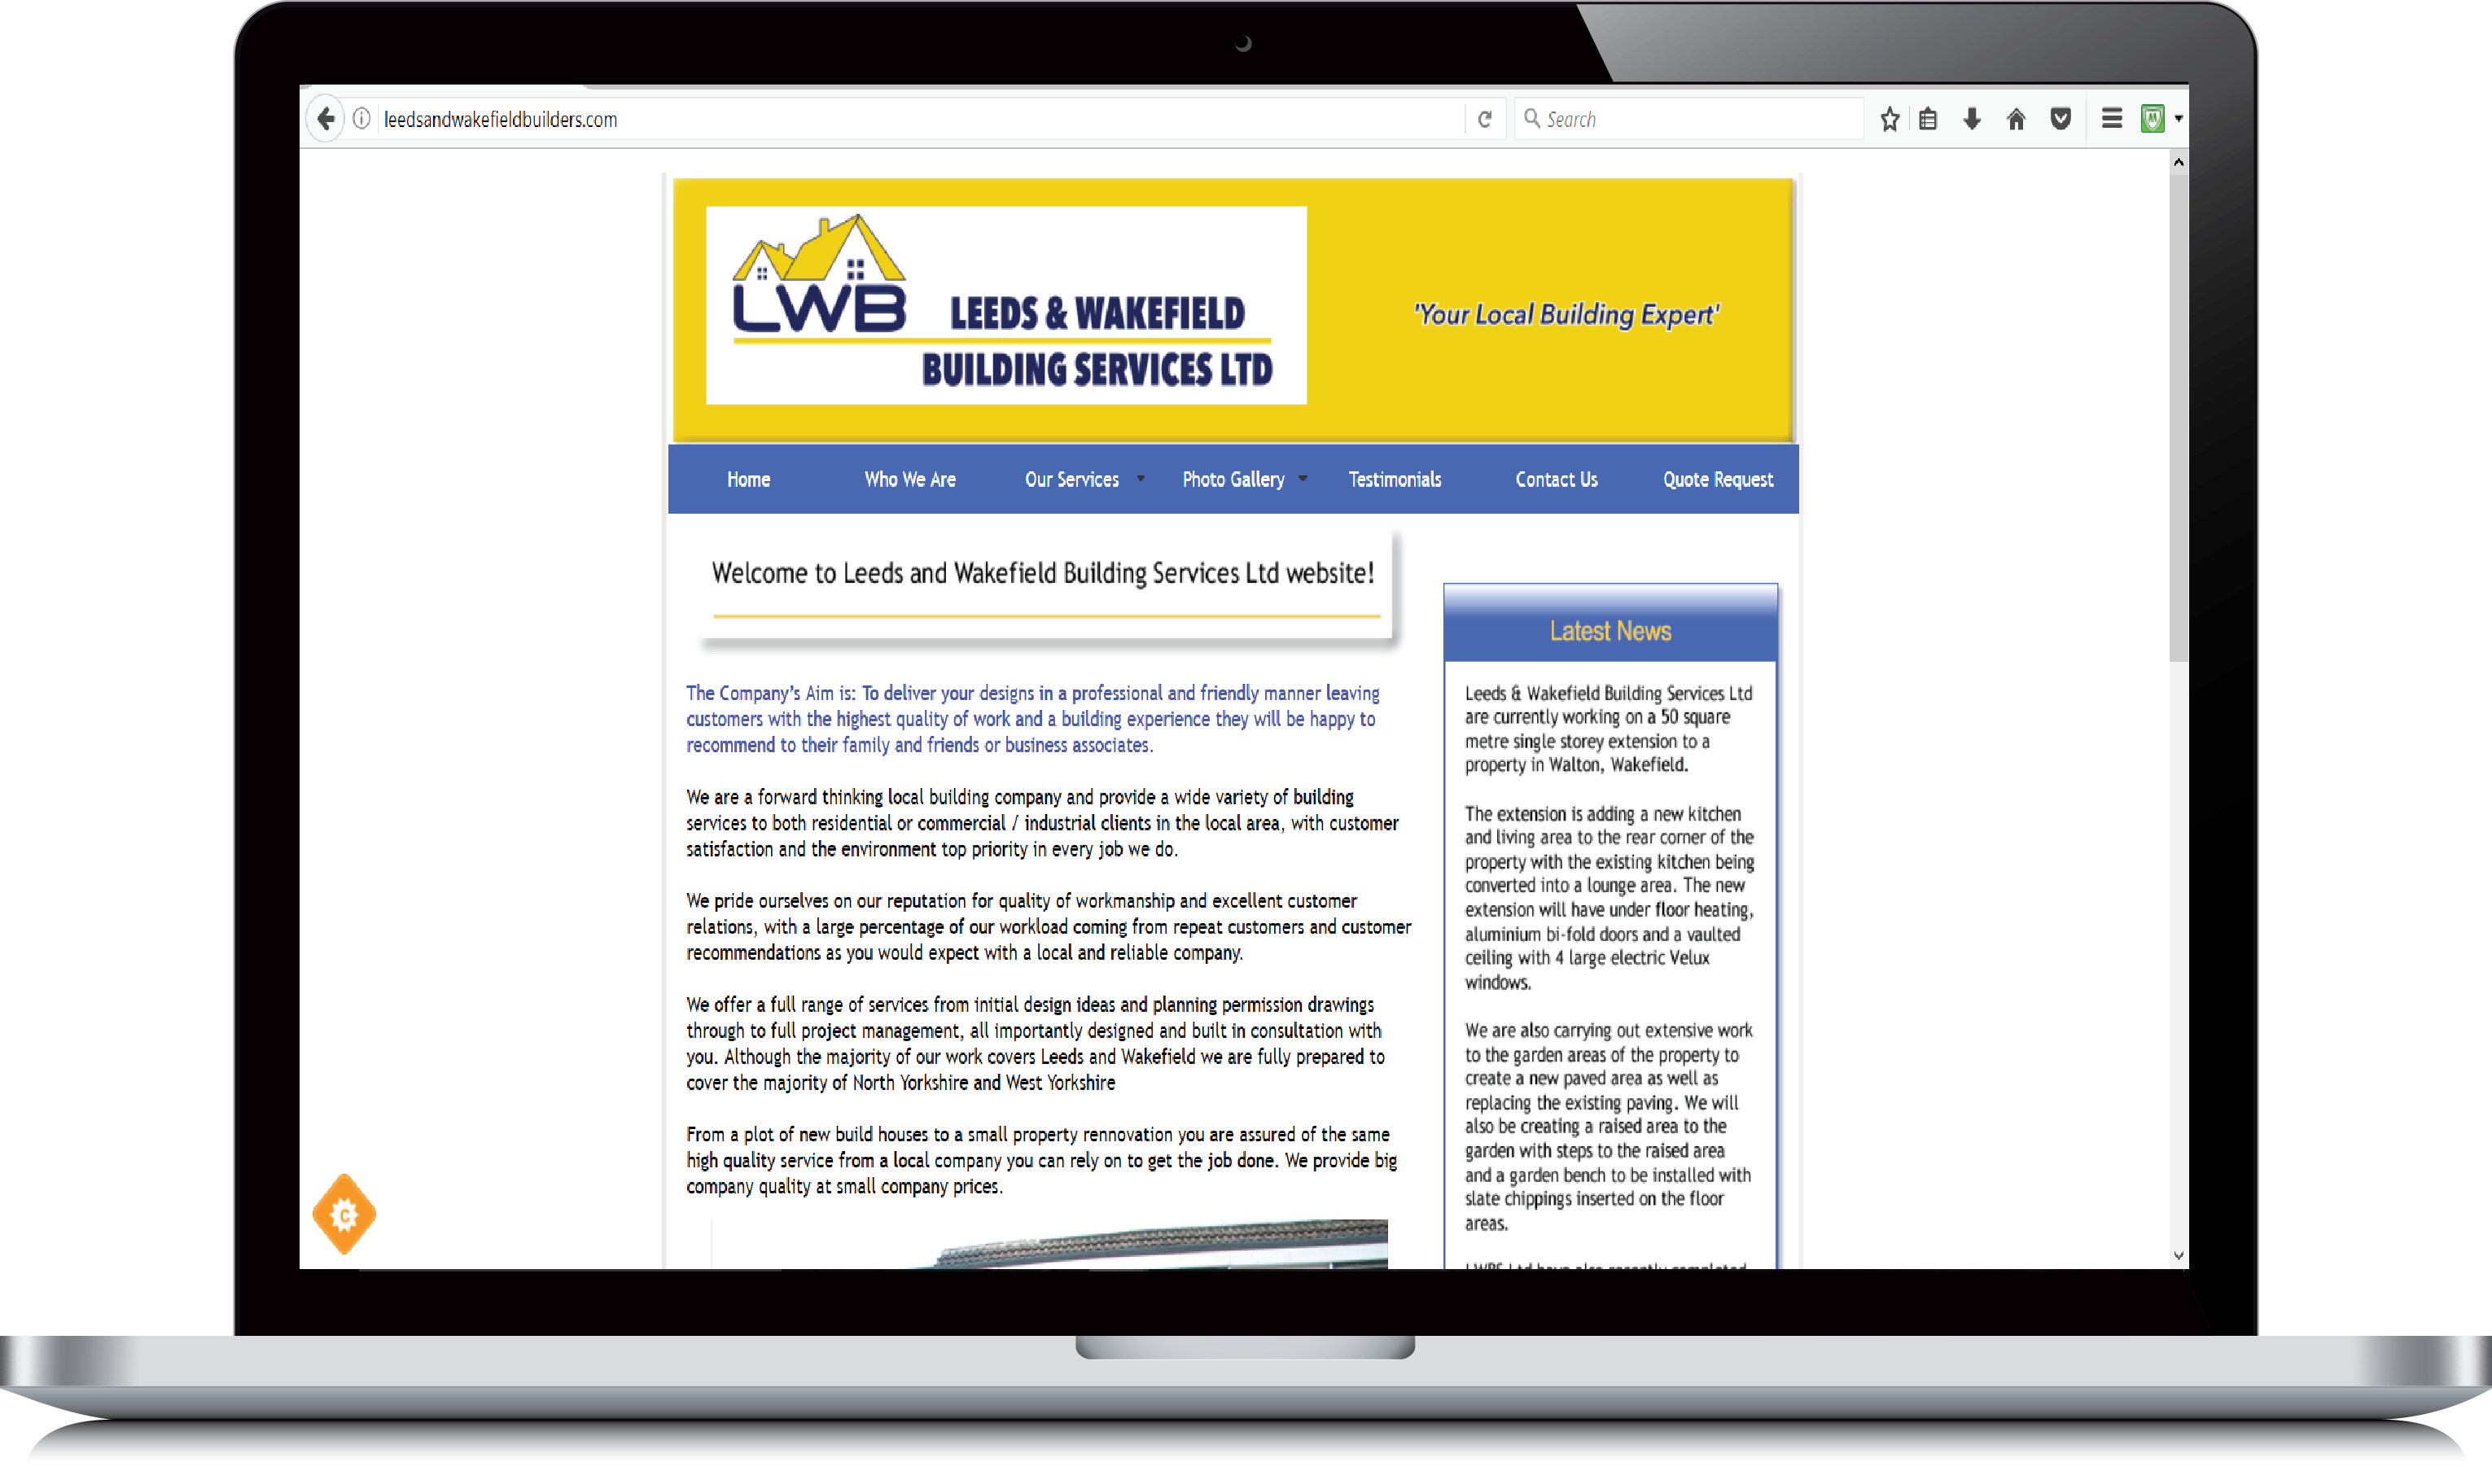 Leeds and Wakefield Builders website example view